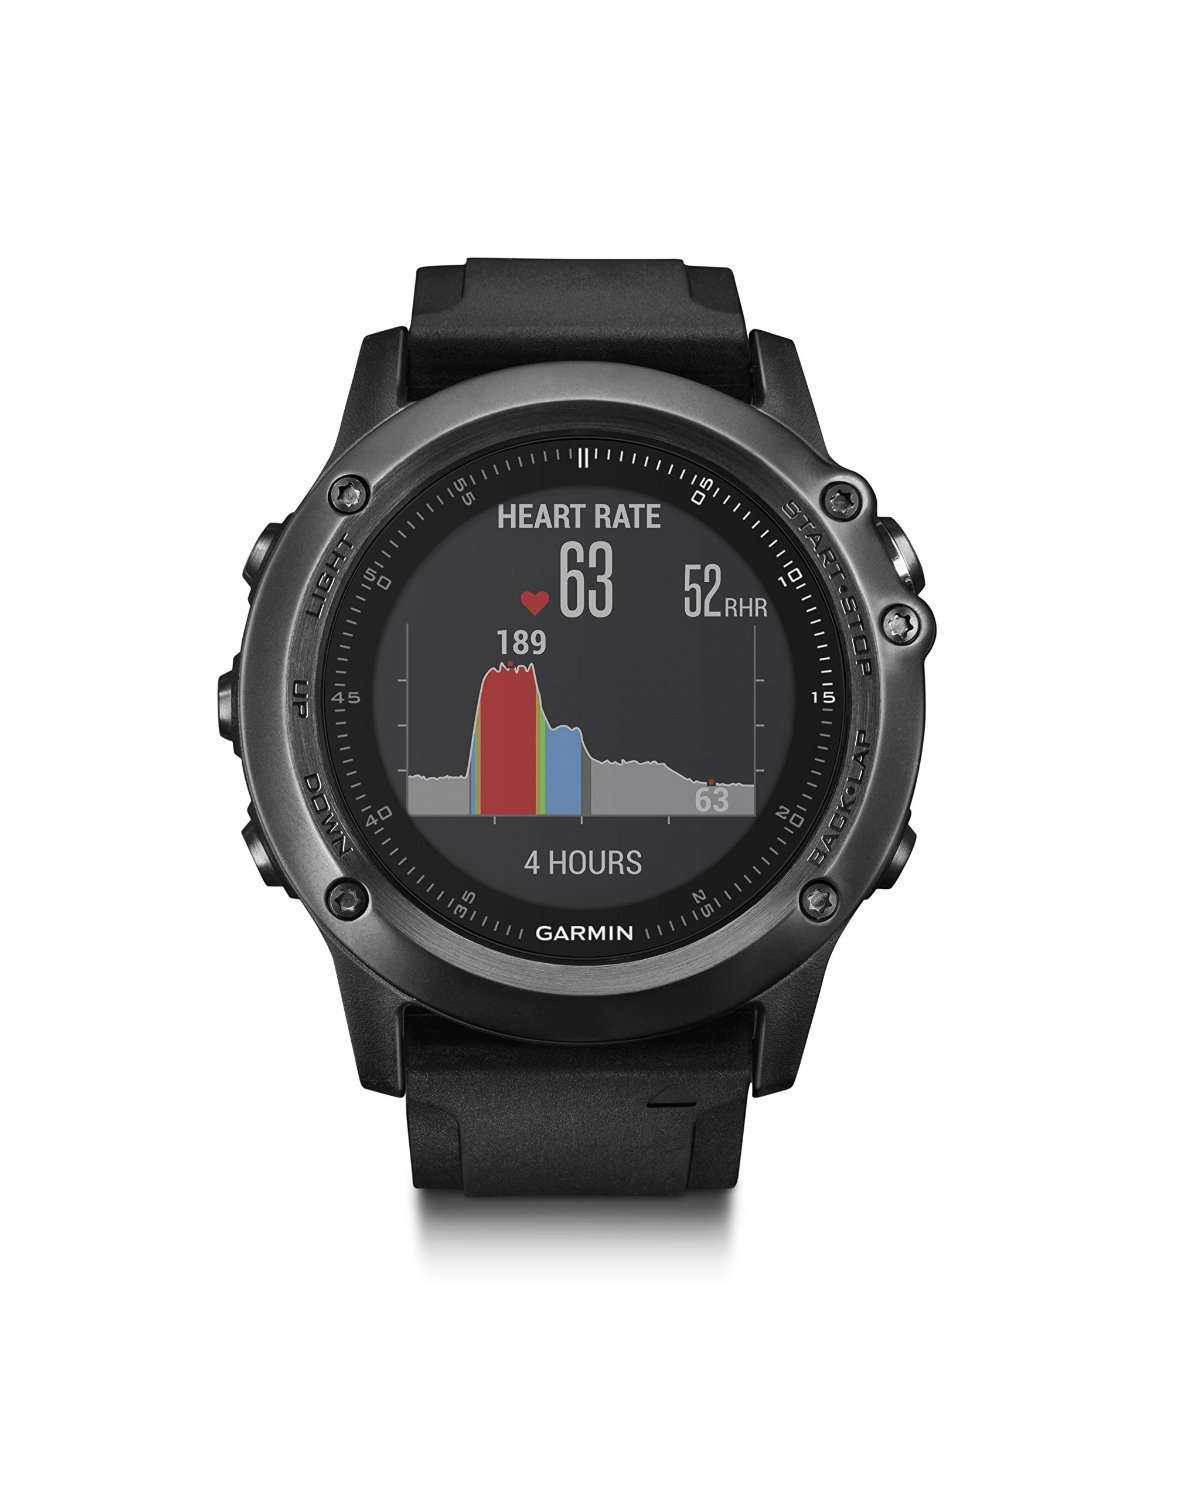 Garmin Activity Tracker Fitness Performer Image 3